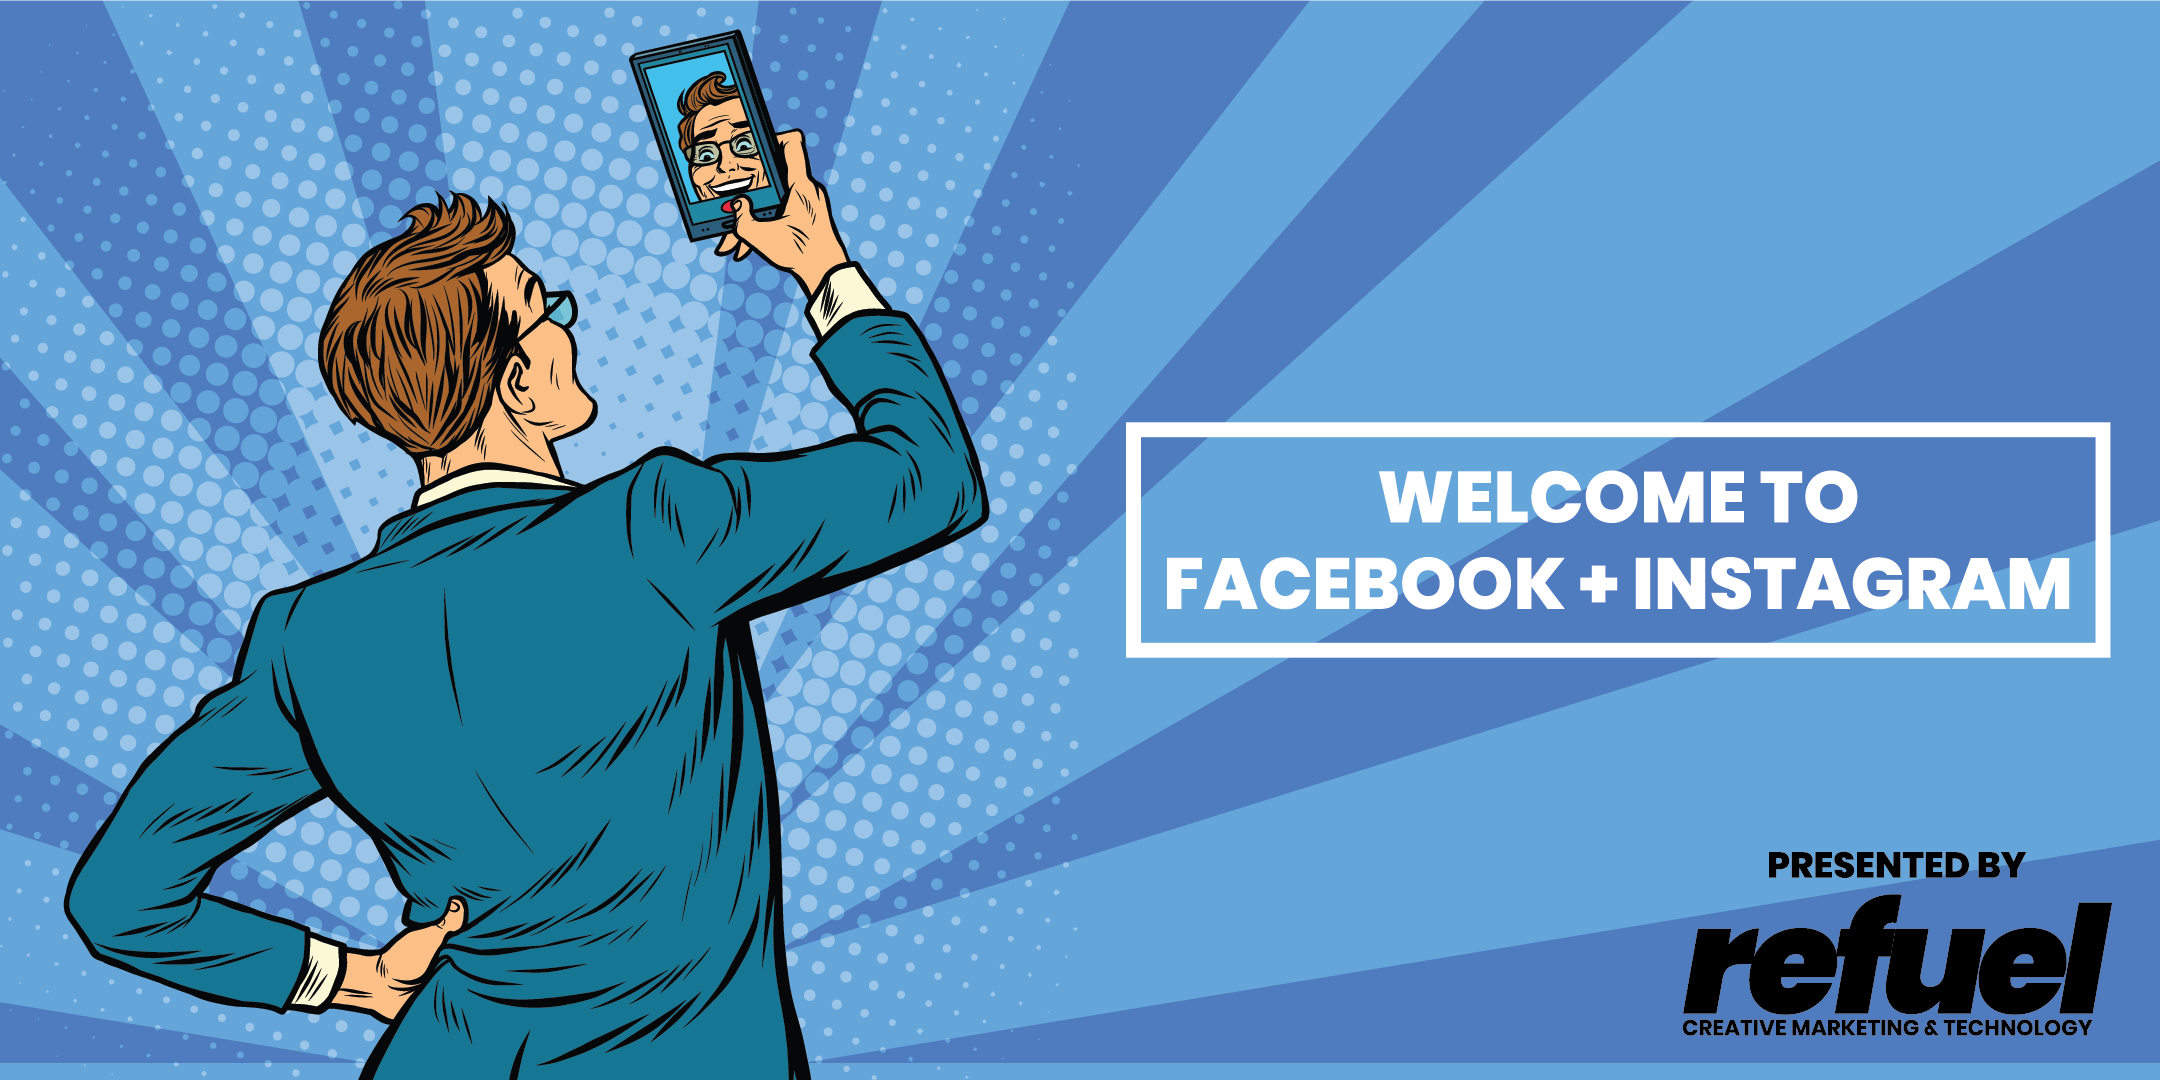 Welcome to Facebook + Instagram-01